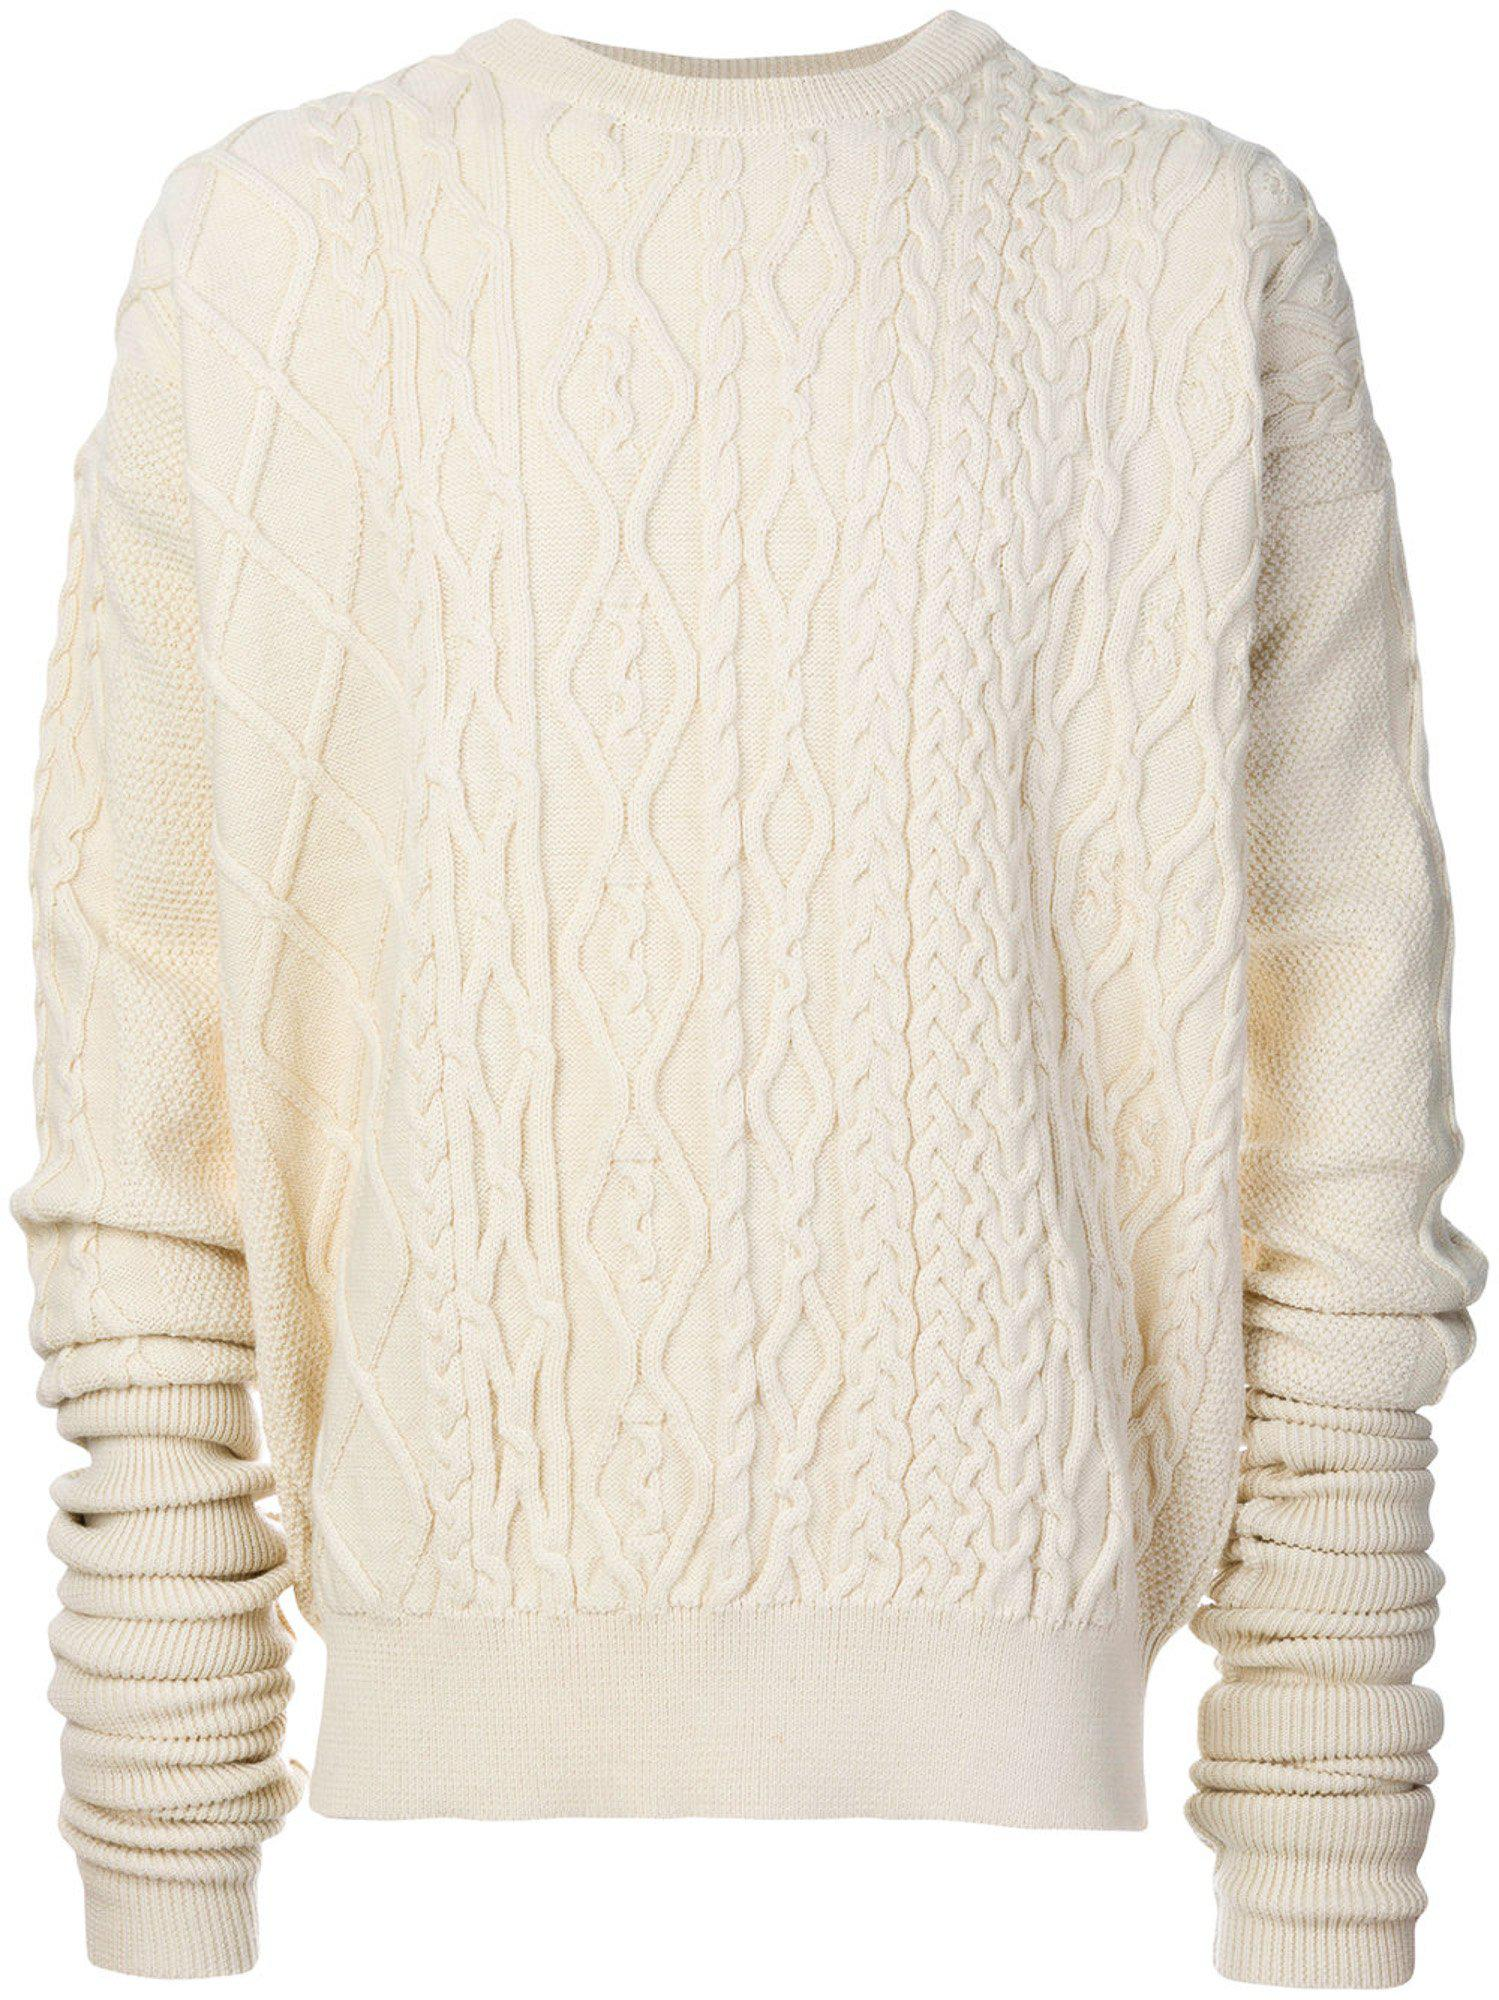 Y. project Ivory Cable Knit Sweater | Lyst